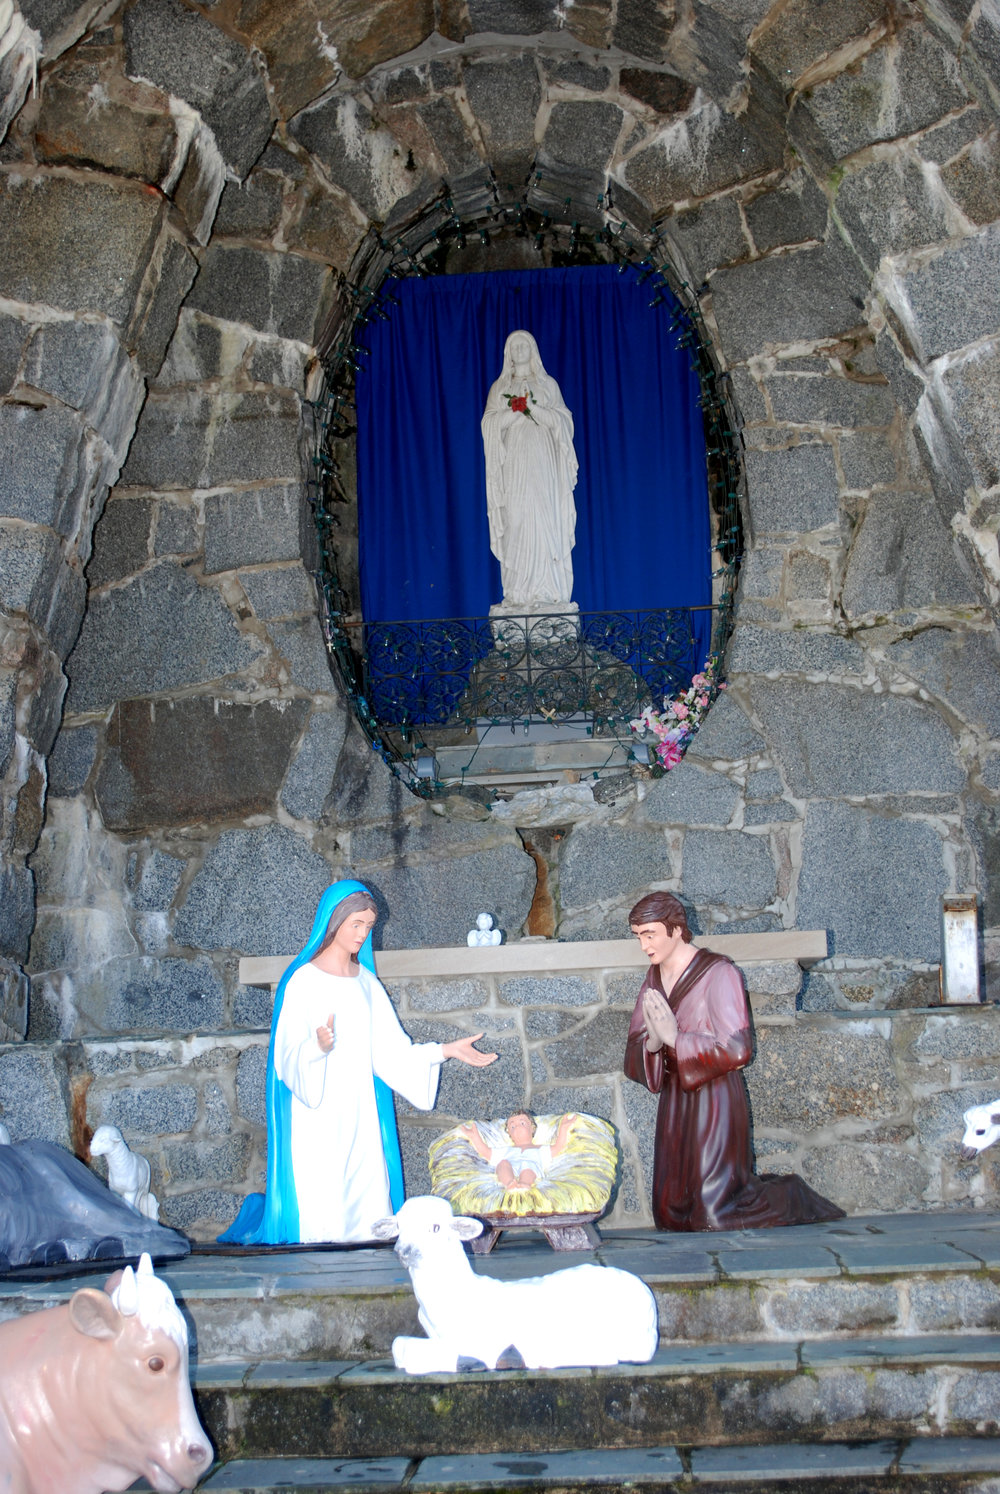 Christmas Prelude – Candlelight Caroling - Saturday, December 7, 2019St. Anthony's Franciscan Monastery, 28 Beach Ave, Kennebunk ME 04064, Outside in front of the stone grotto with the manger, 207-967-4865Join the Franciscan Friars for an evening of Christmas songs by candlelight. Christmas Prelude starts Thursday December 5 and ends Sunday December 15th. Be sure to stay at the Franciscan Guest House during Prelude. Contact the hotel for reservation prices and details. For more information about Christmas Prelude, click here.